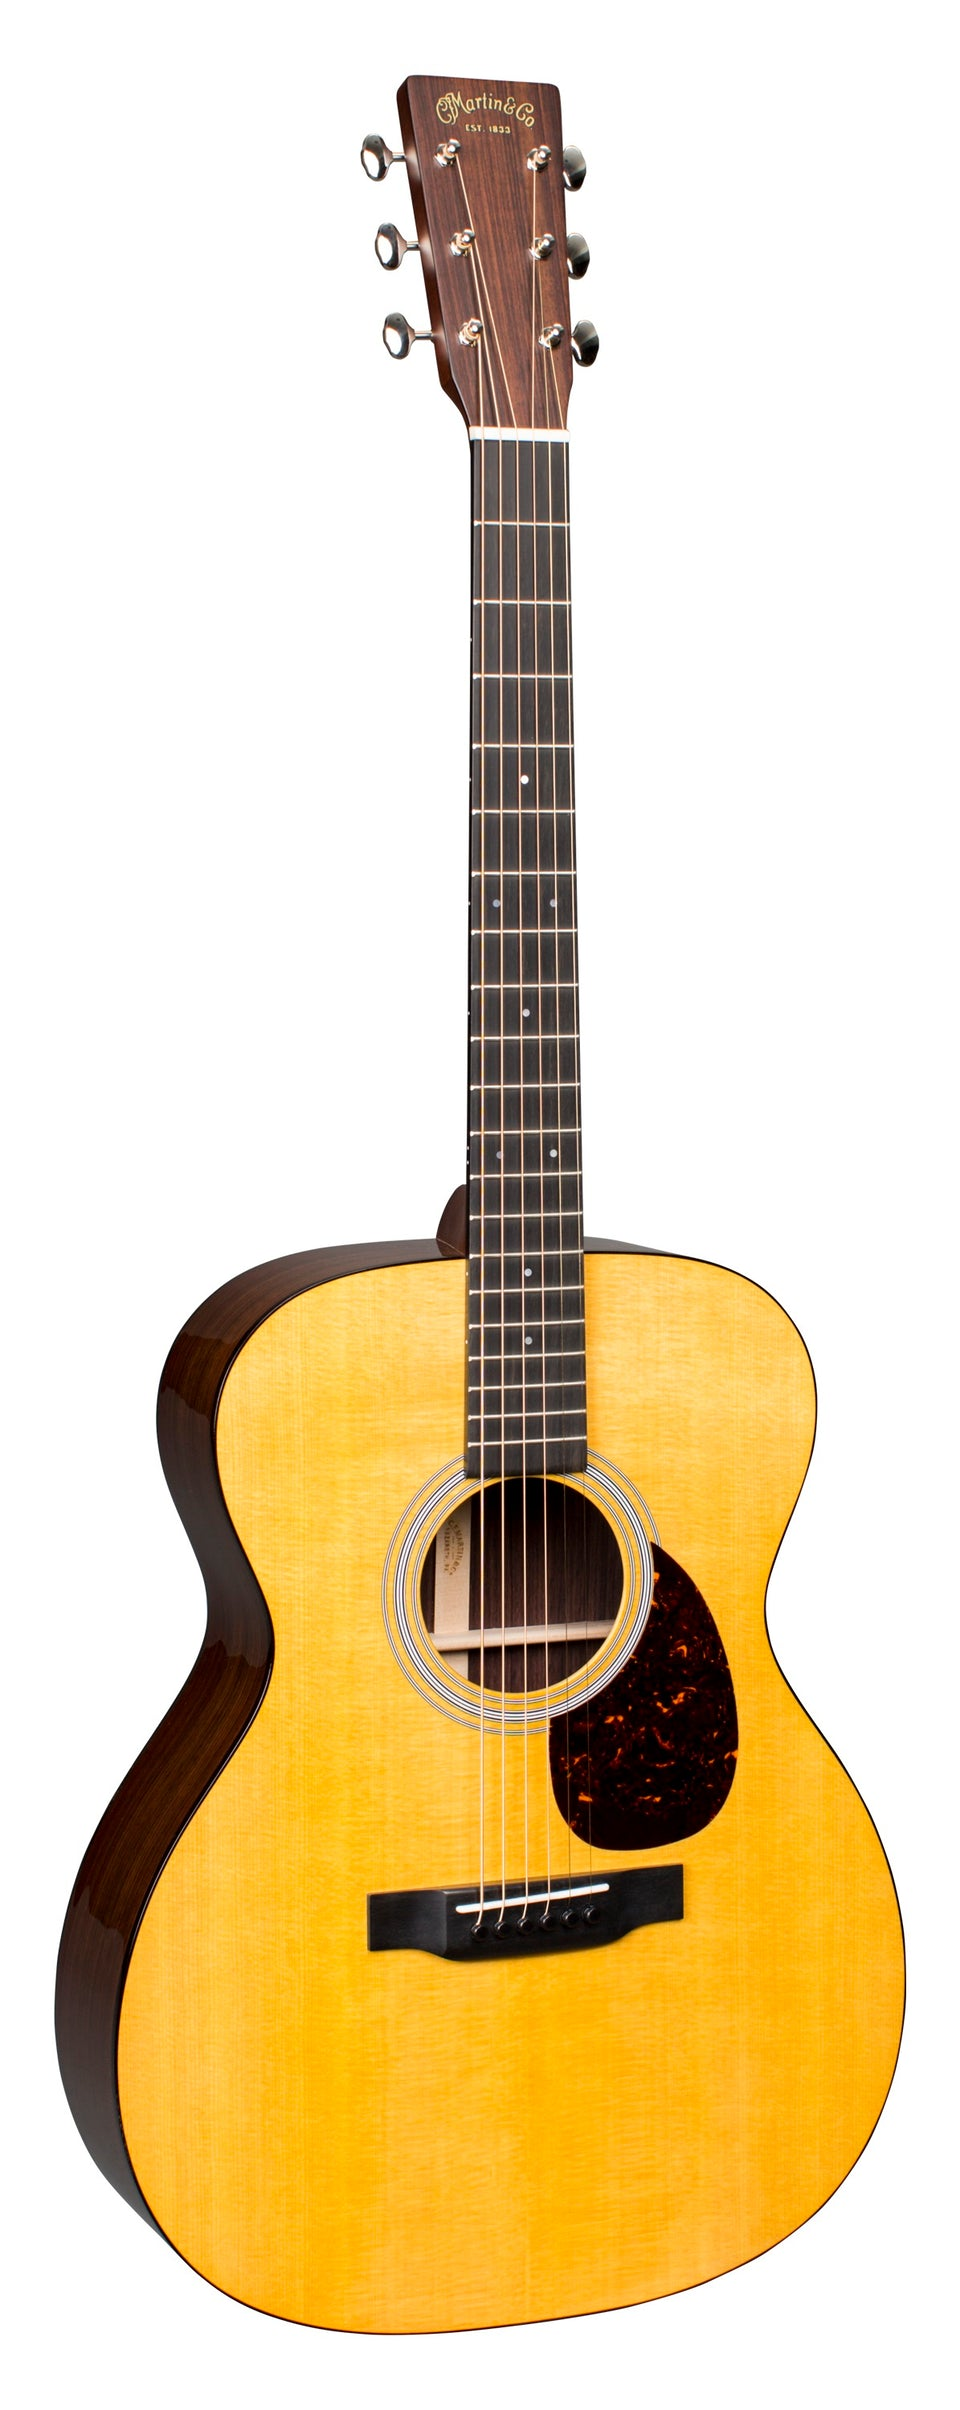 Martin OM-21 (2018) Orchestra Model Acoustic Guitar